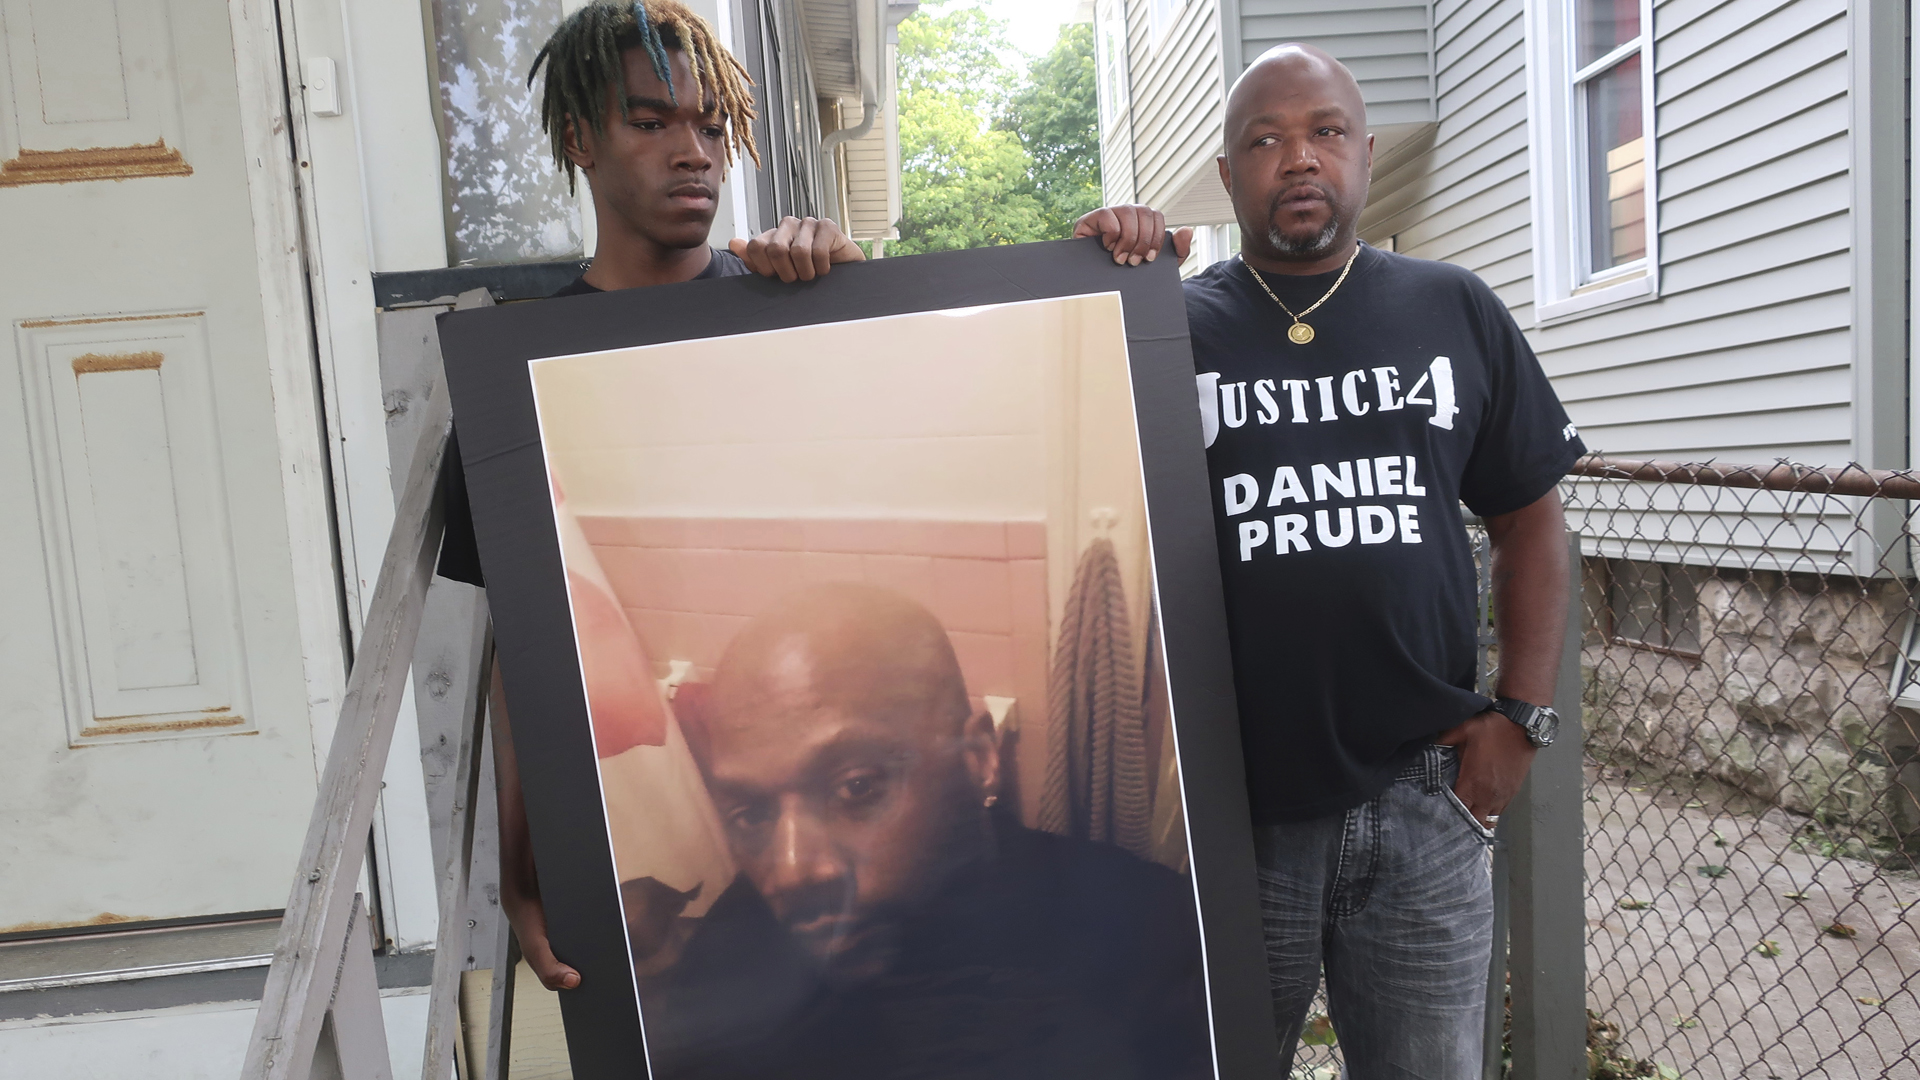 In this Sept. 3, 2020, file photo, Joe Prude, brother of Daniel Prude, right, and his son Armin, stand with a picture of Daniel Prude in Rochester, N.Y. (Ted Shaffre/Associated Press)